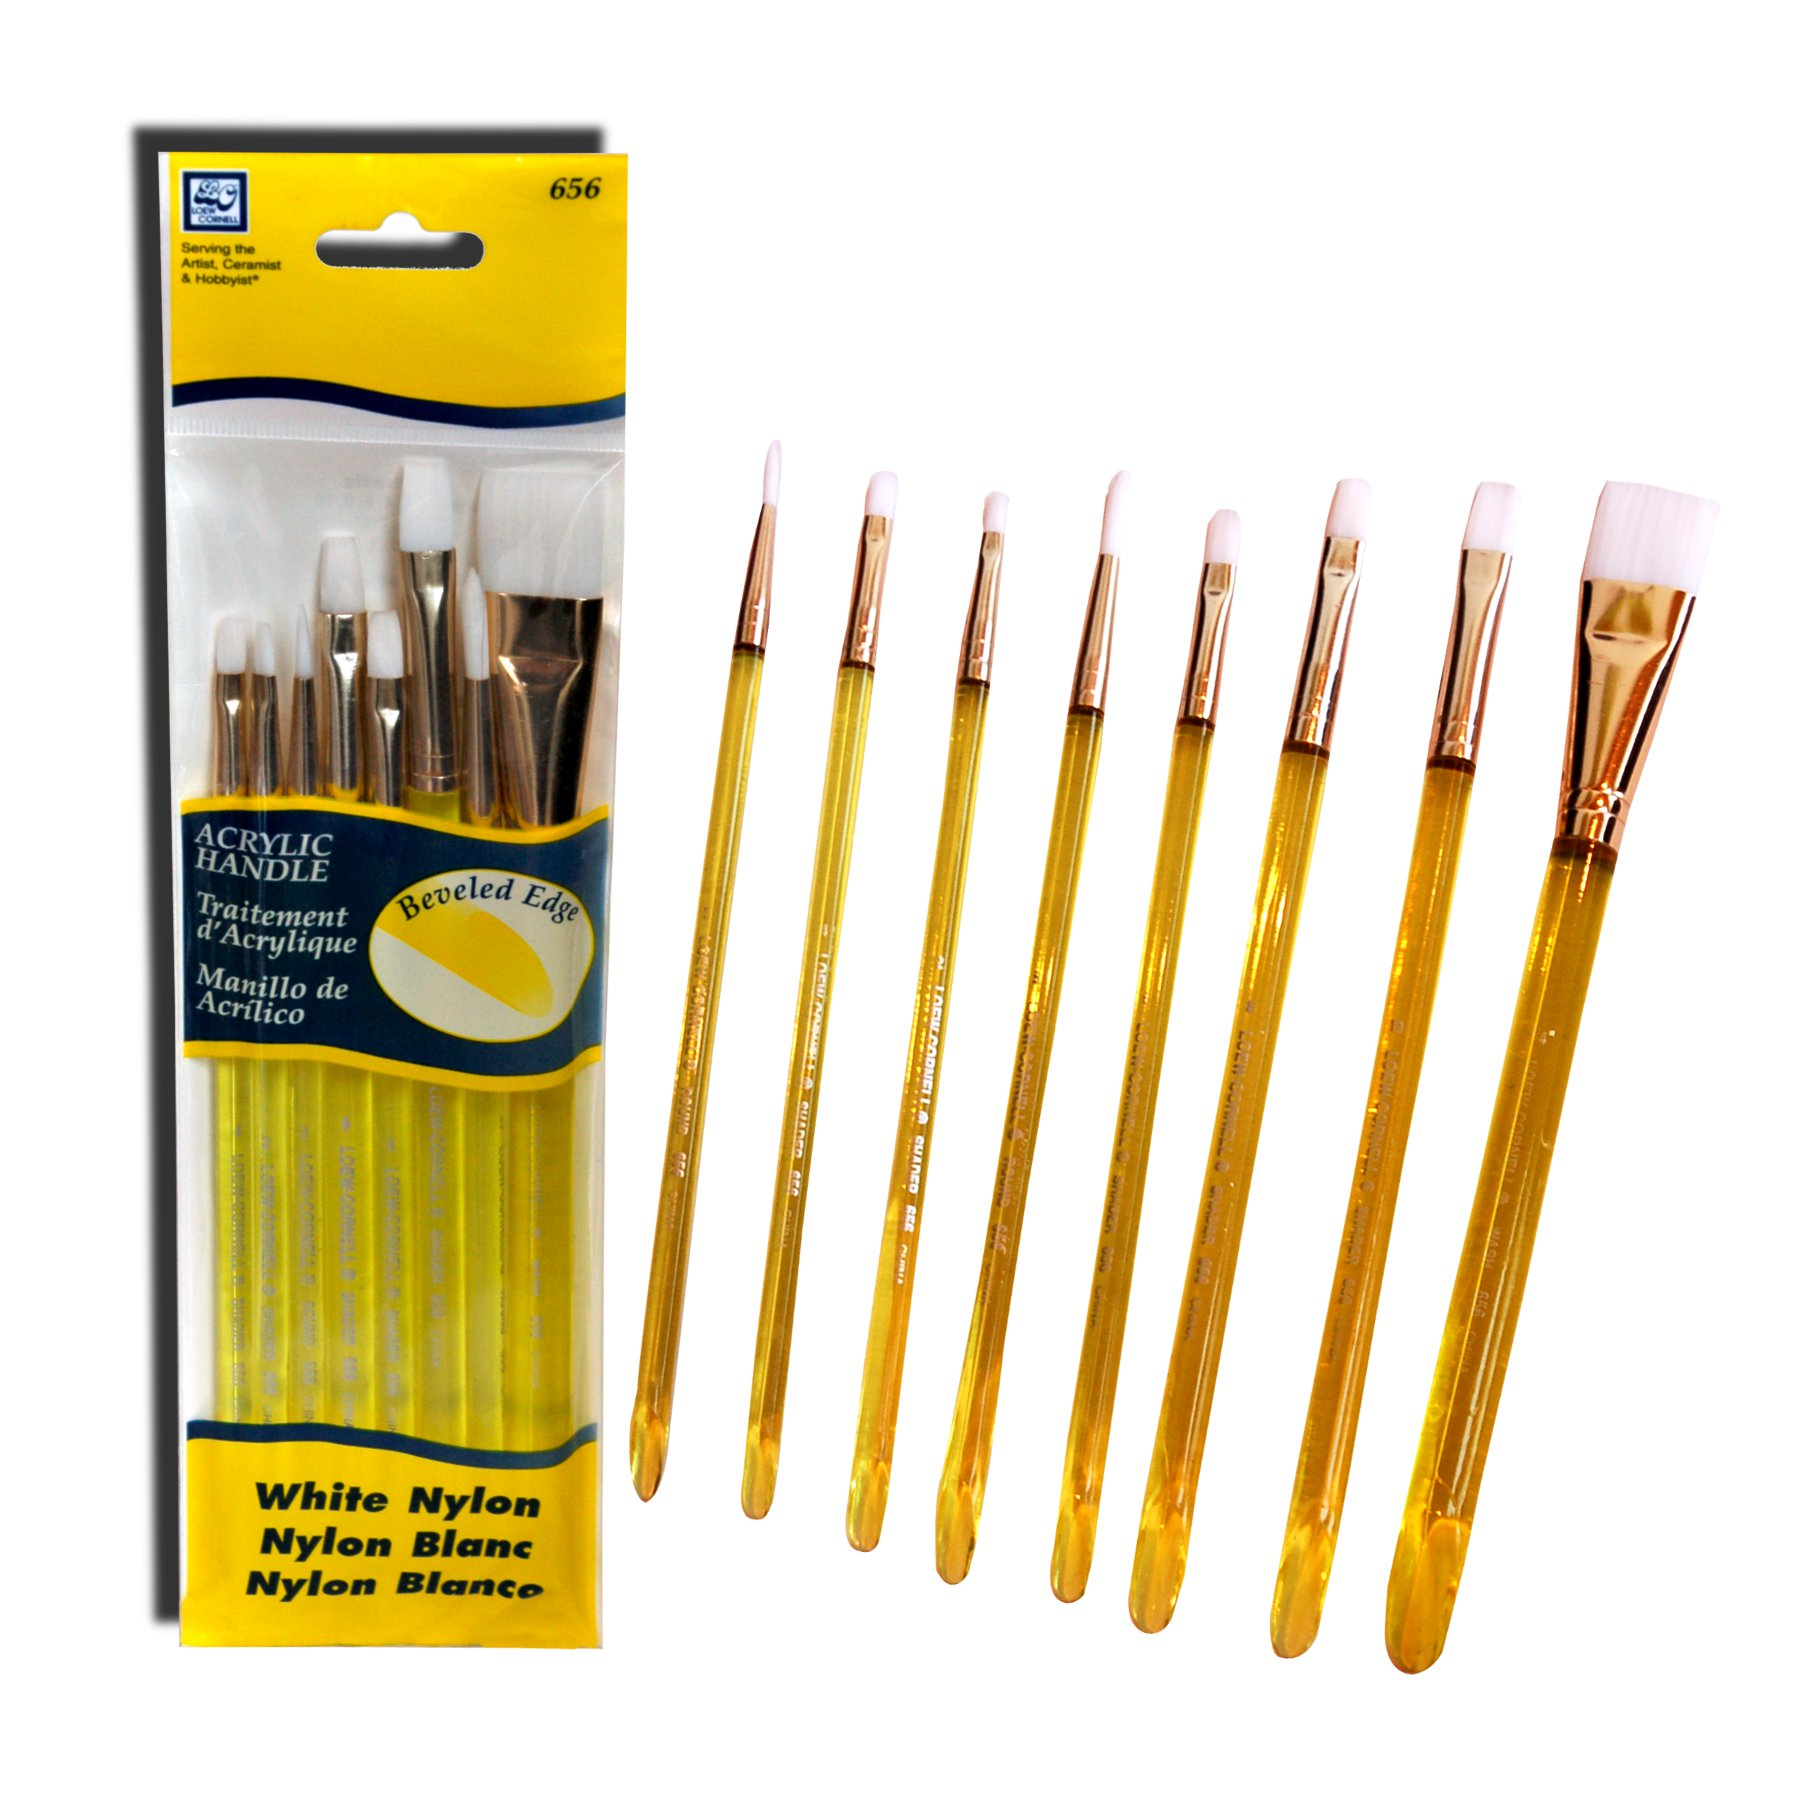 Loew-Cornell brush set 2